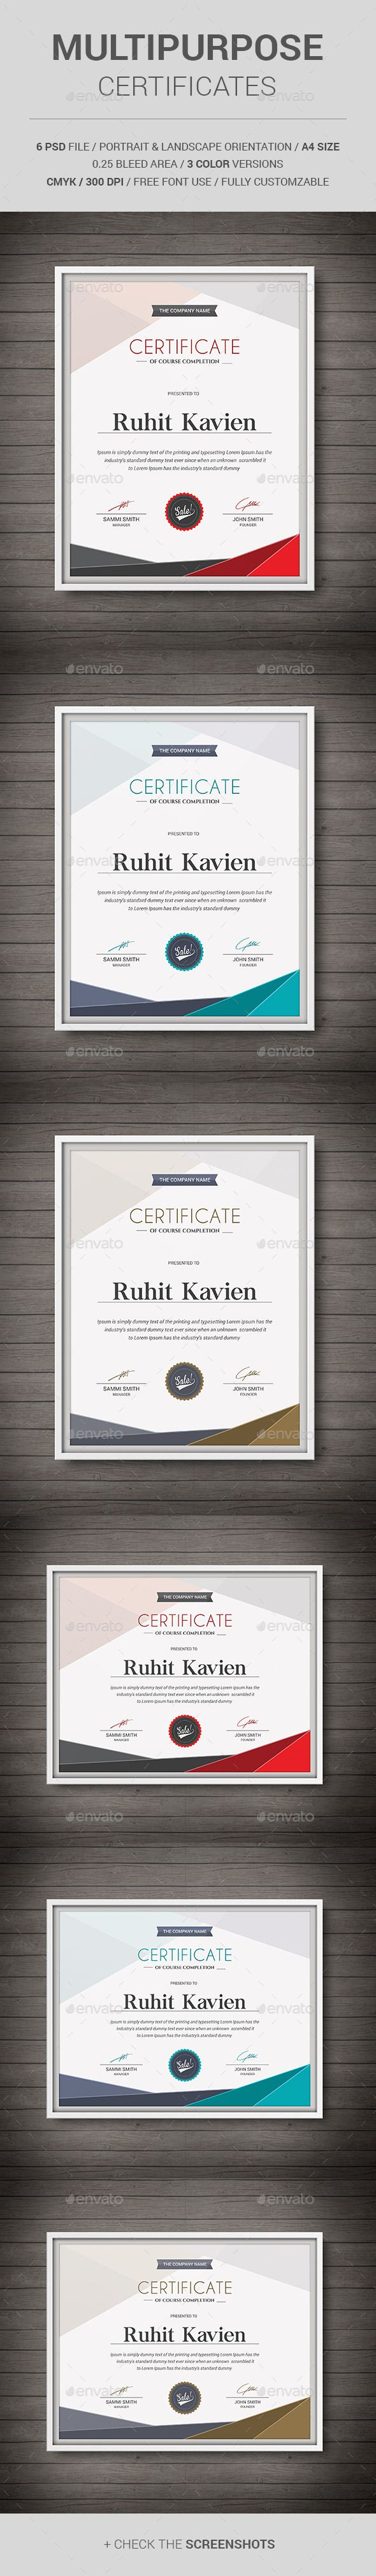 Multipurpose Certificates Template PSD. Download here: http://graphicriver.net/item/multipurpose-certificates/11513450?ref=ksioks